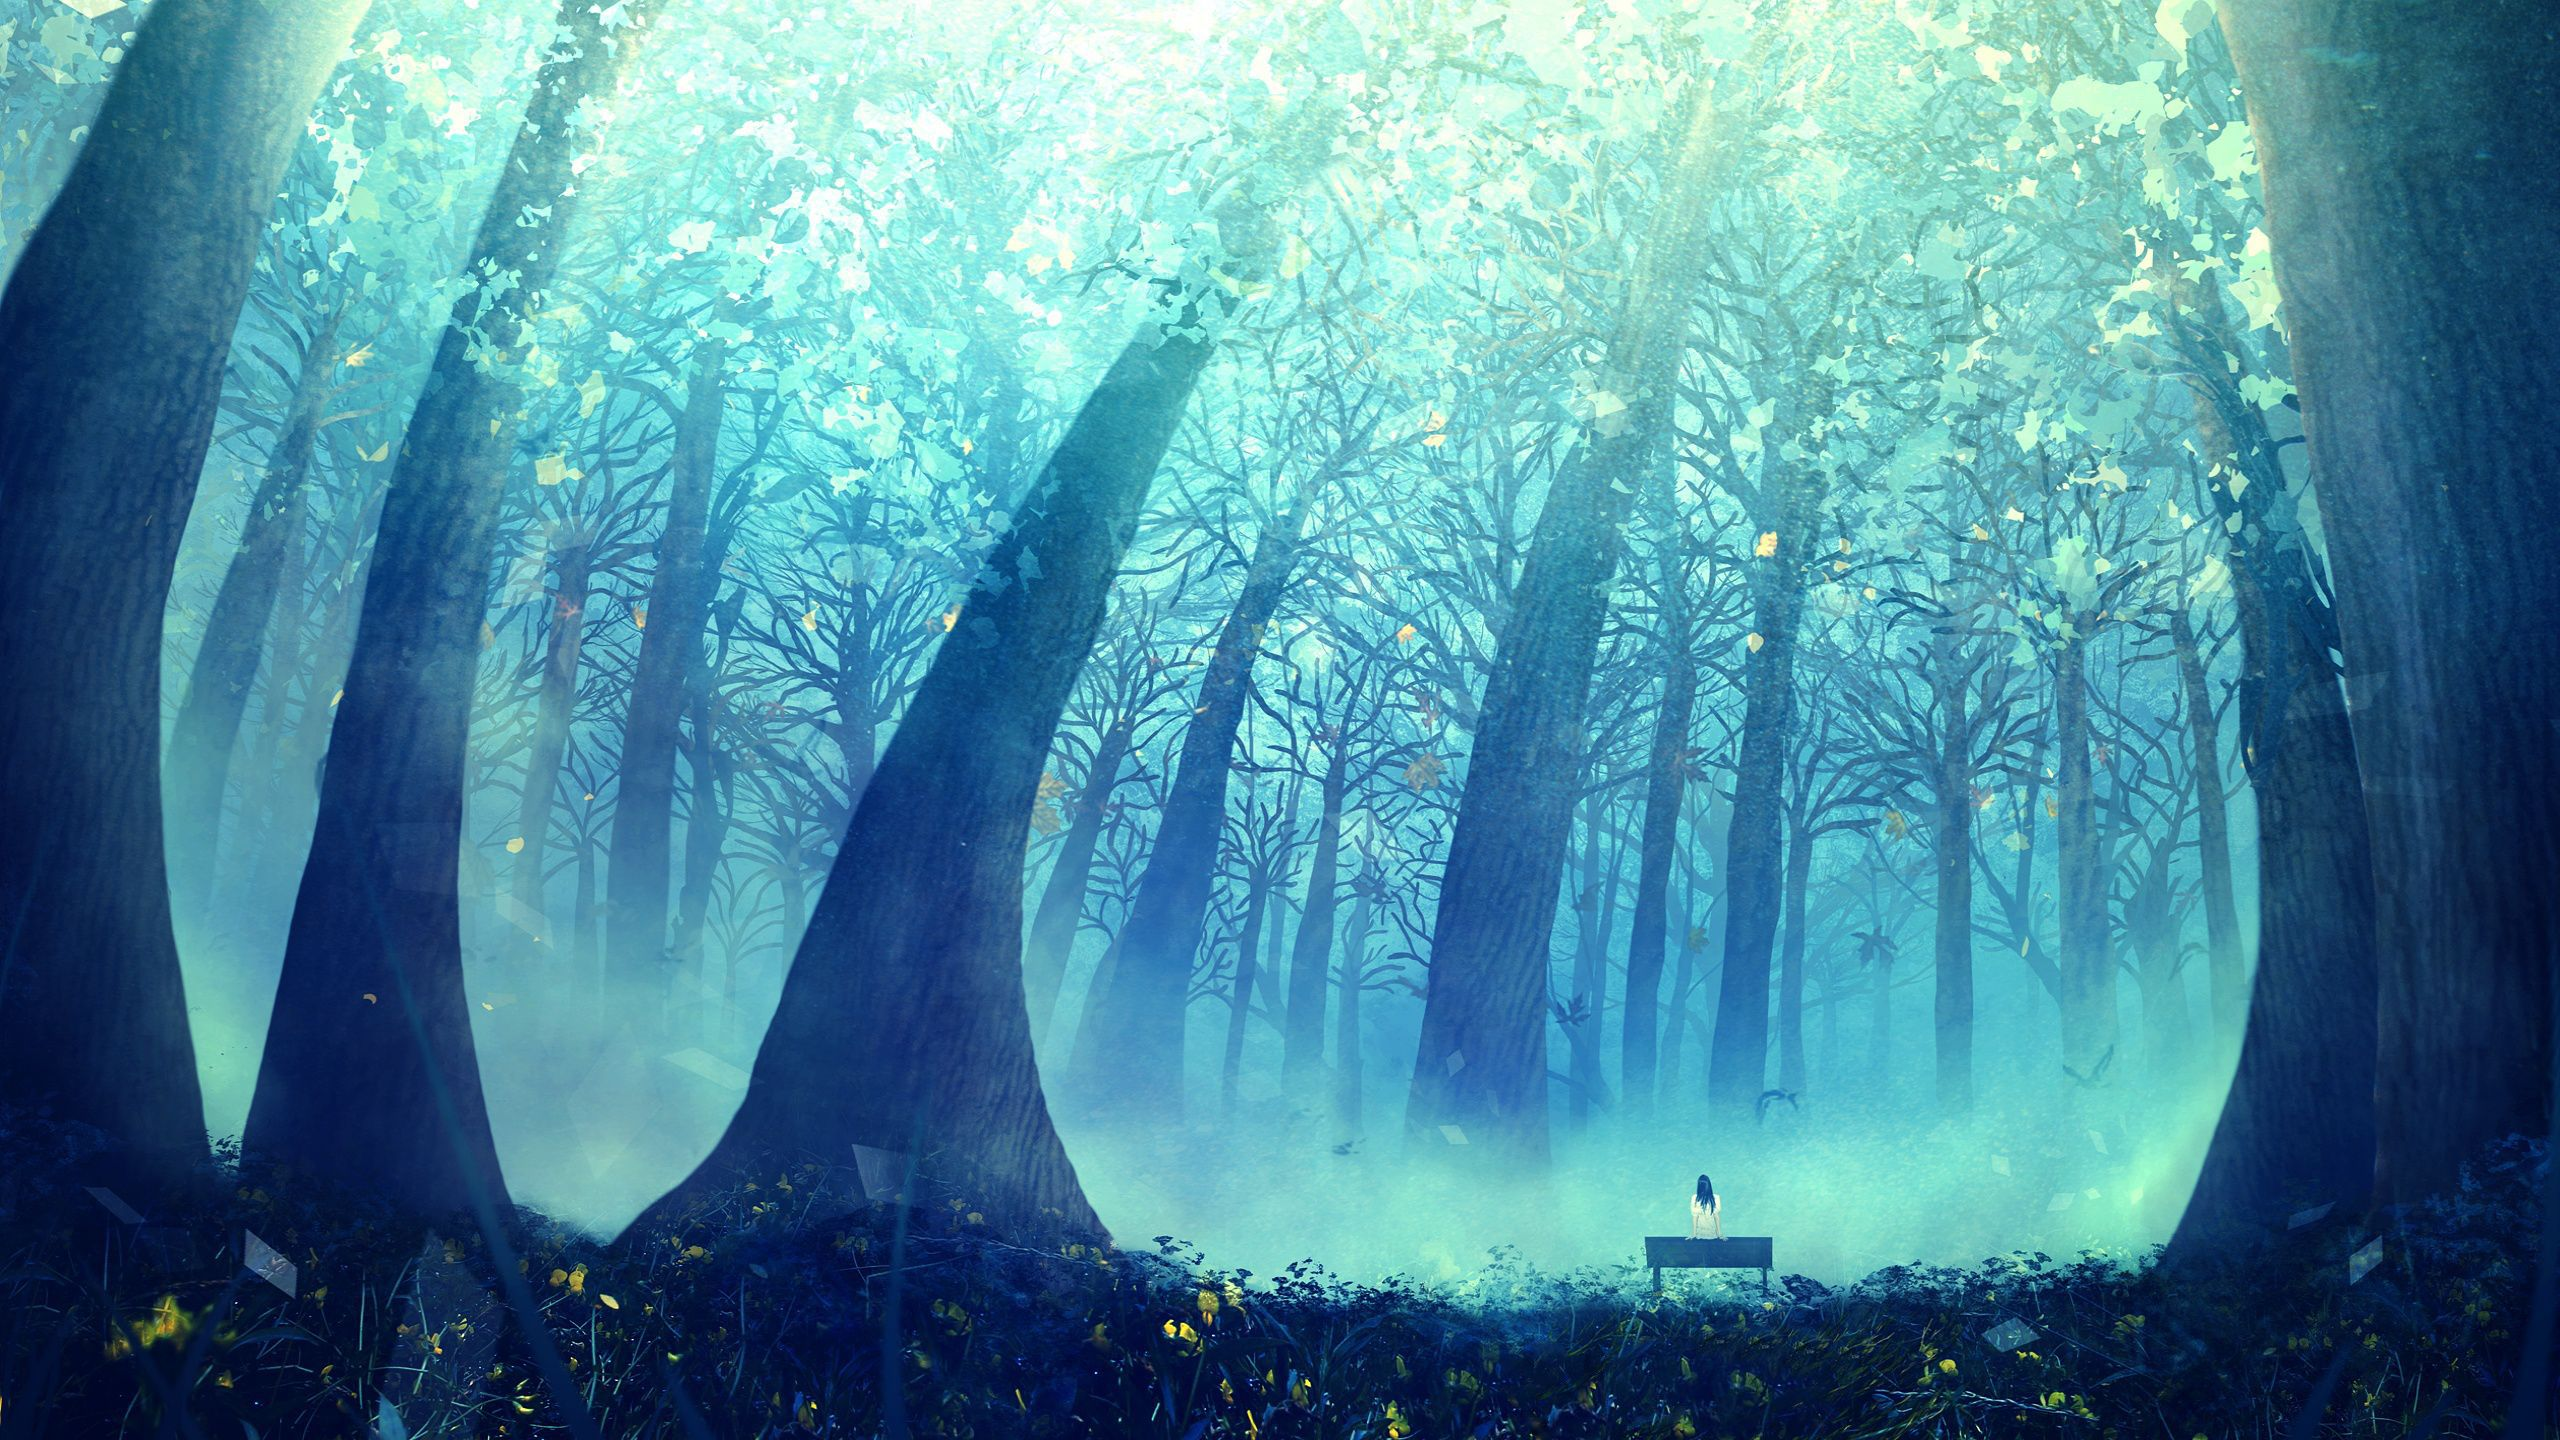 55611 Anime Scenery Deep Blue Forest Jpg 2560 215 1440